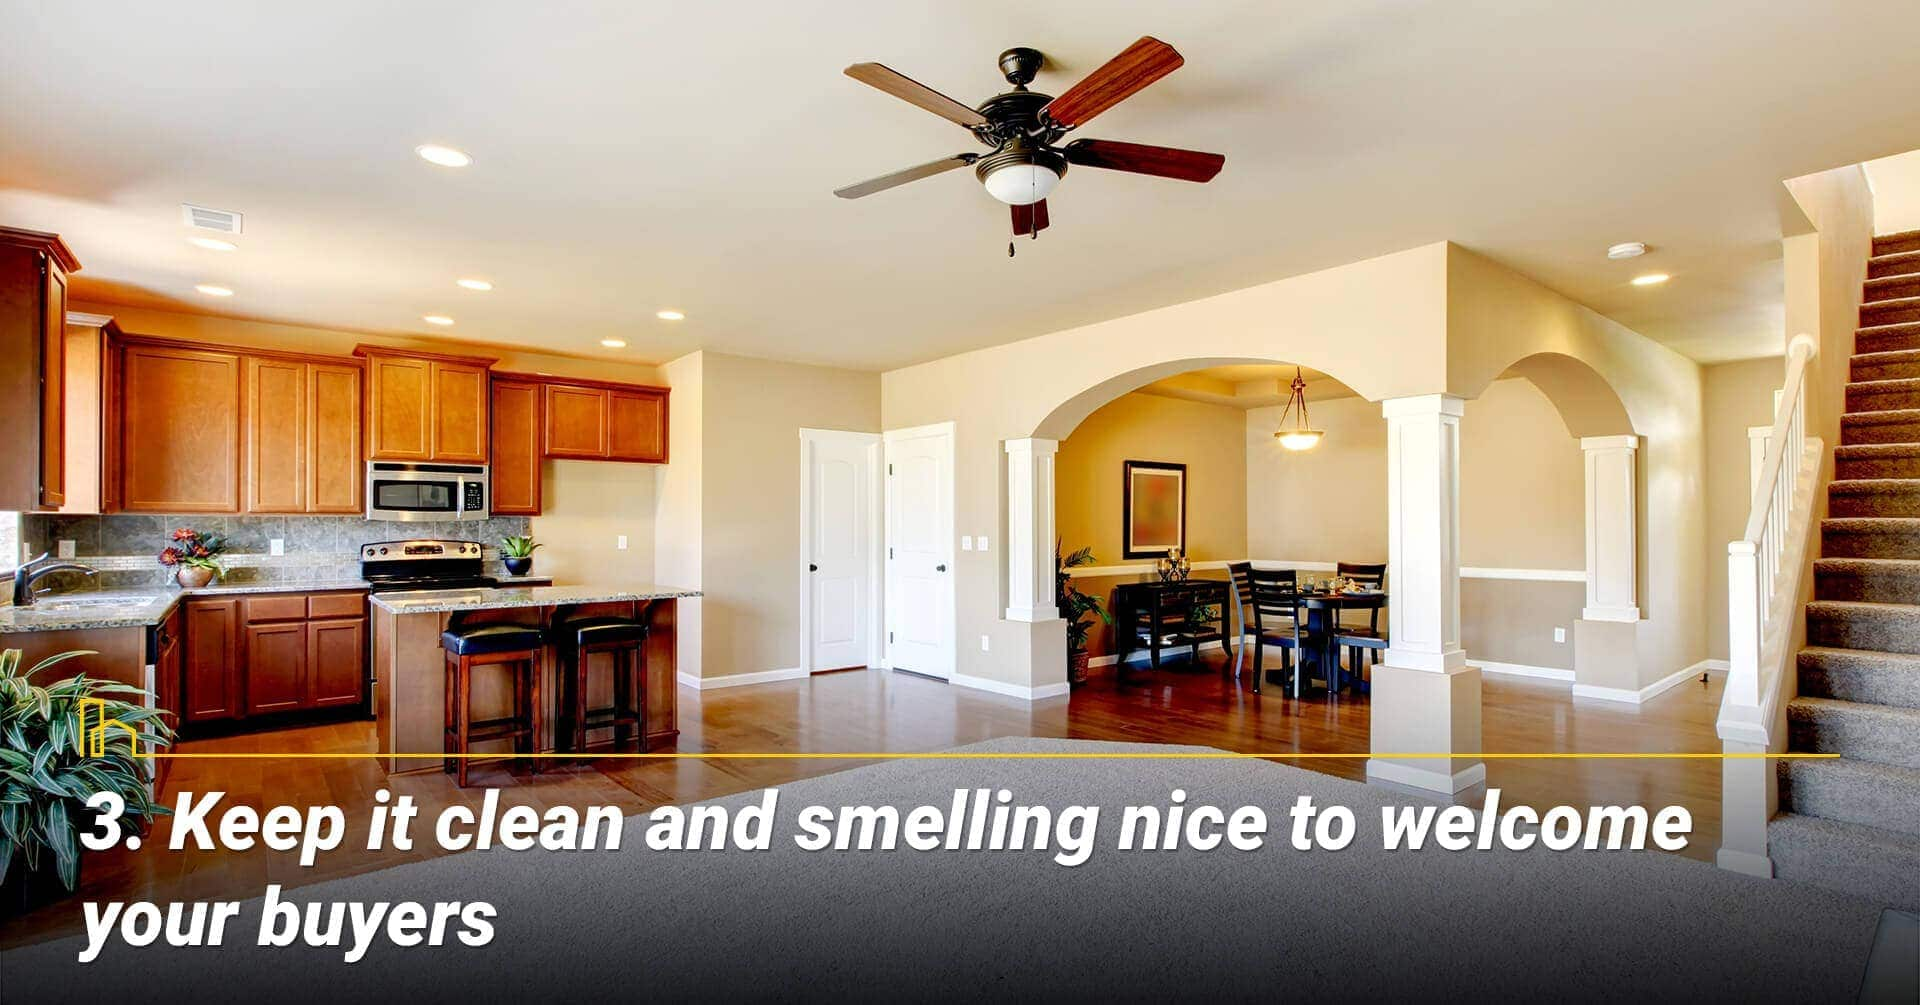 Keep it clean and smelling nice to welcome your buyers